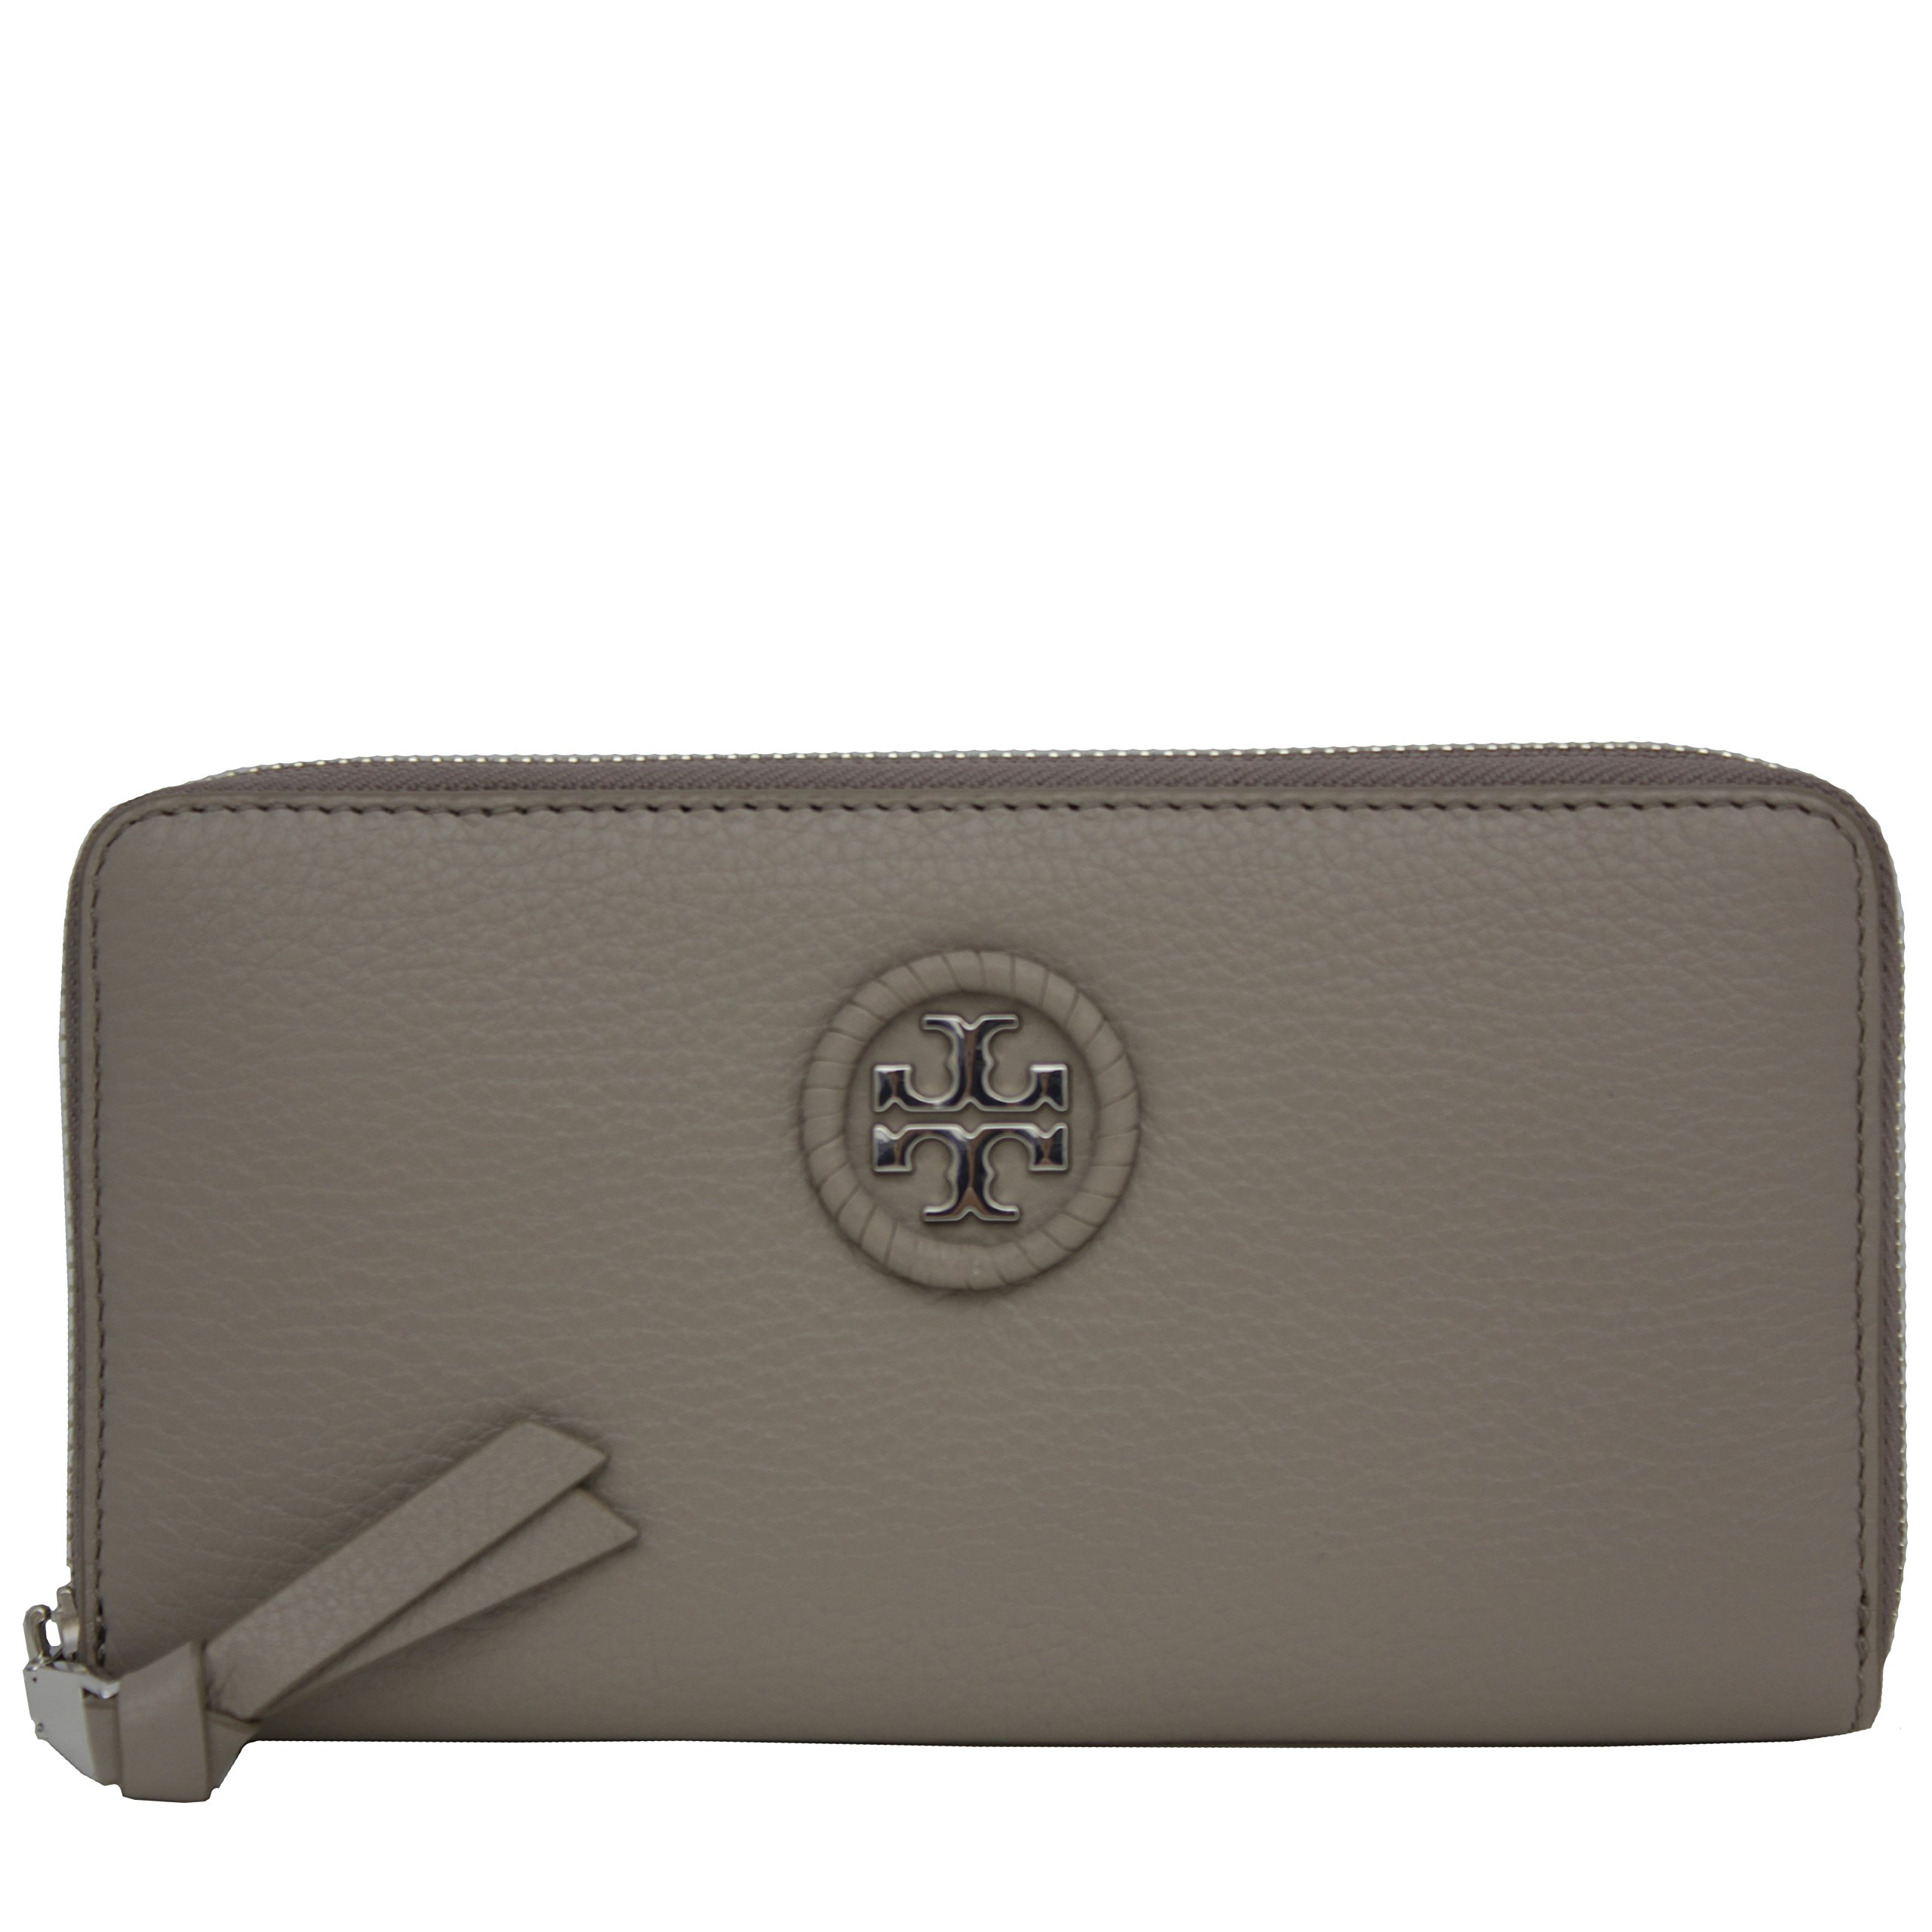 Tory Burch Wallet Zip Around Wallet Whipstitch TB Logo Leather (French Gray) by Tory Burch